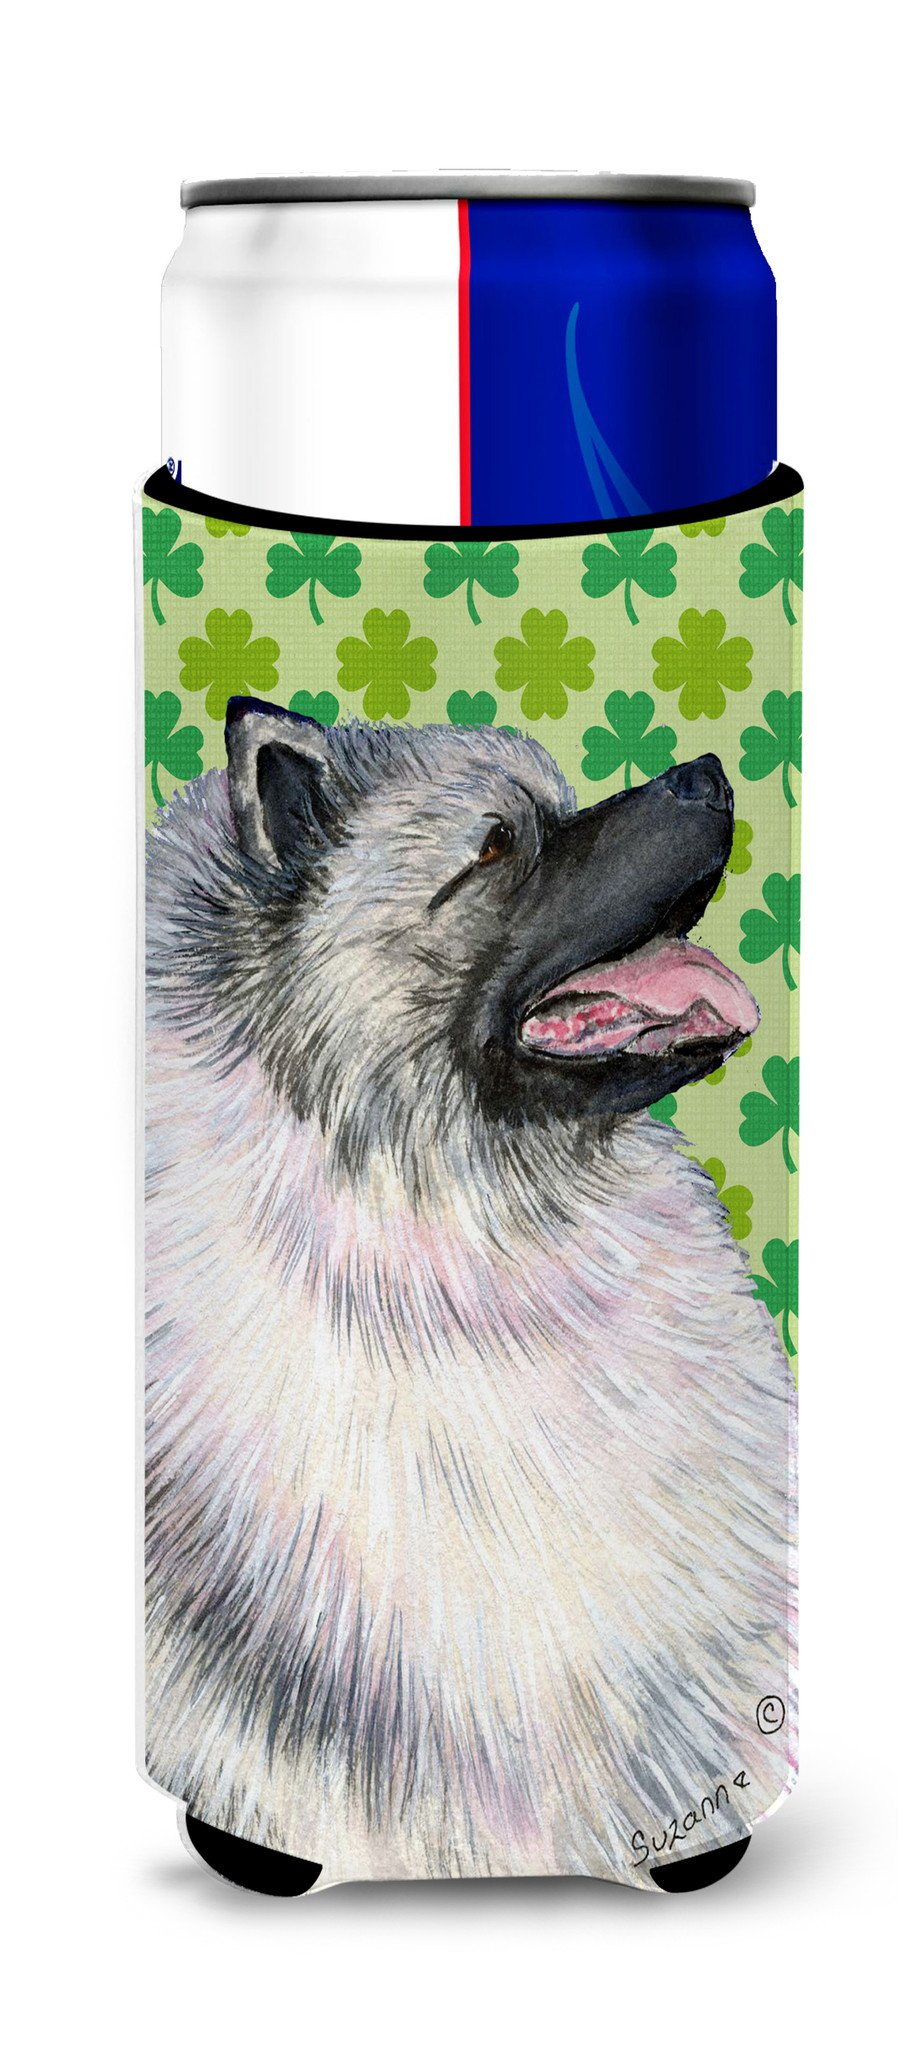 Keeshond St. Patrick's Day Shamrock Portrait Ultra Beverage Insulators for slim cans SS4419MUK by Caroline's Treasures